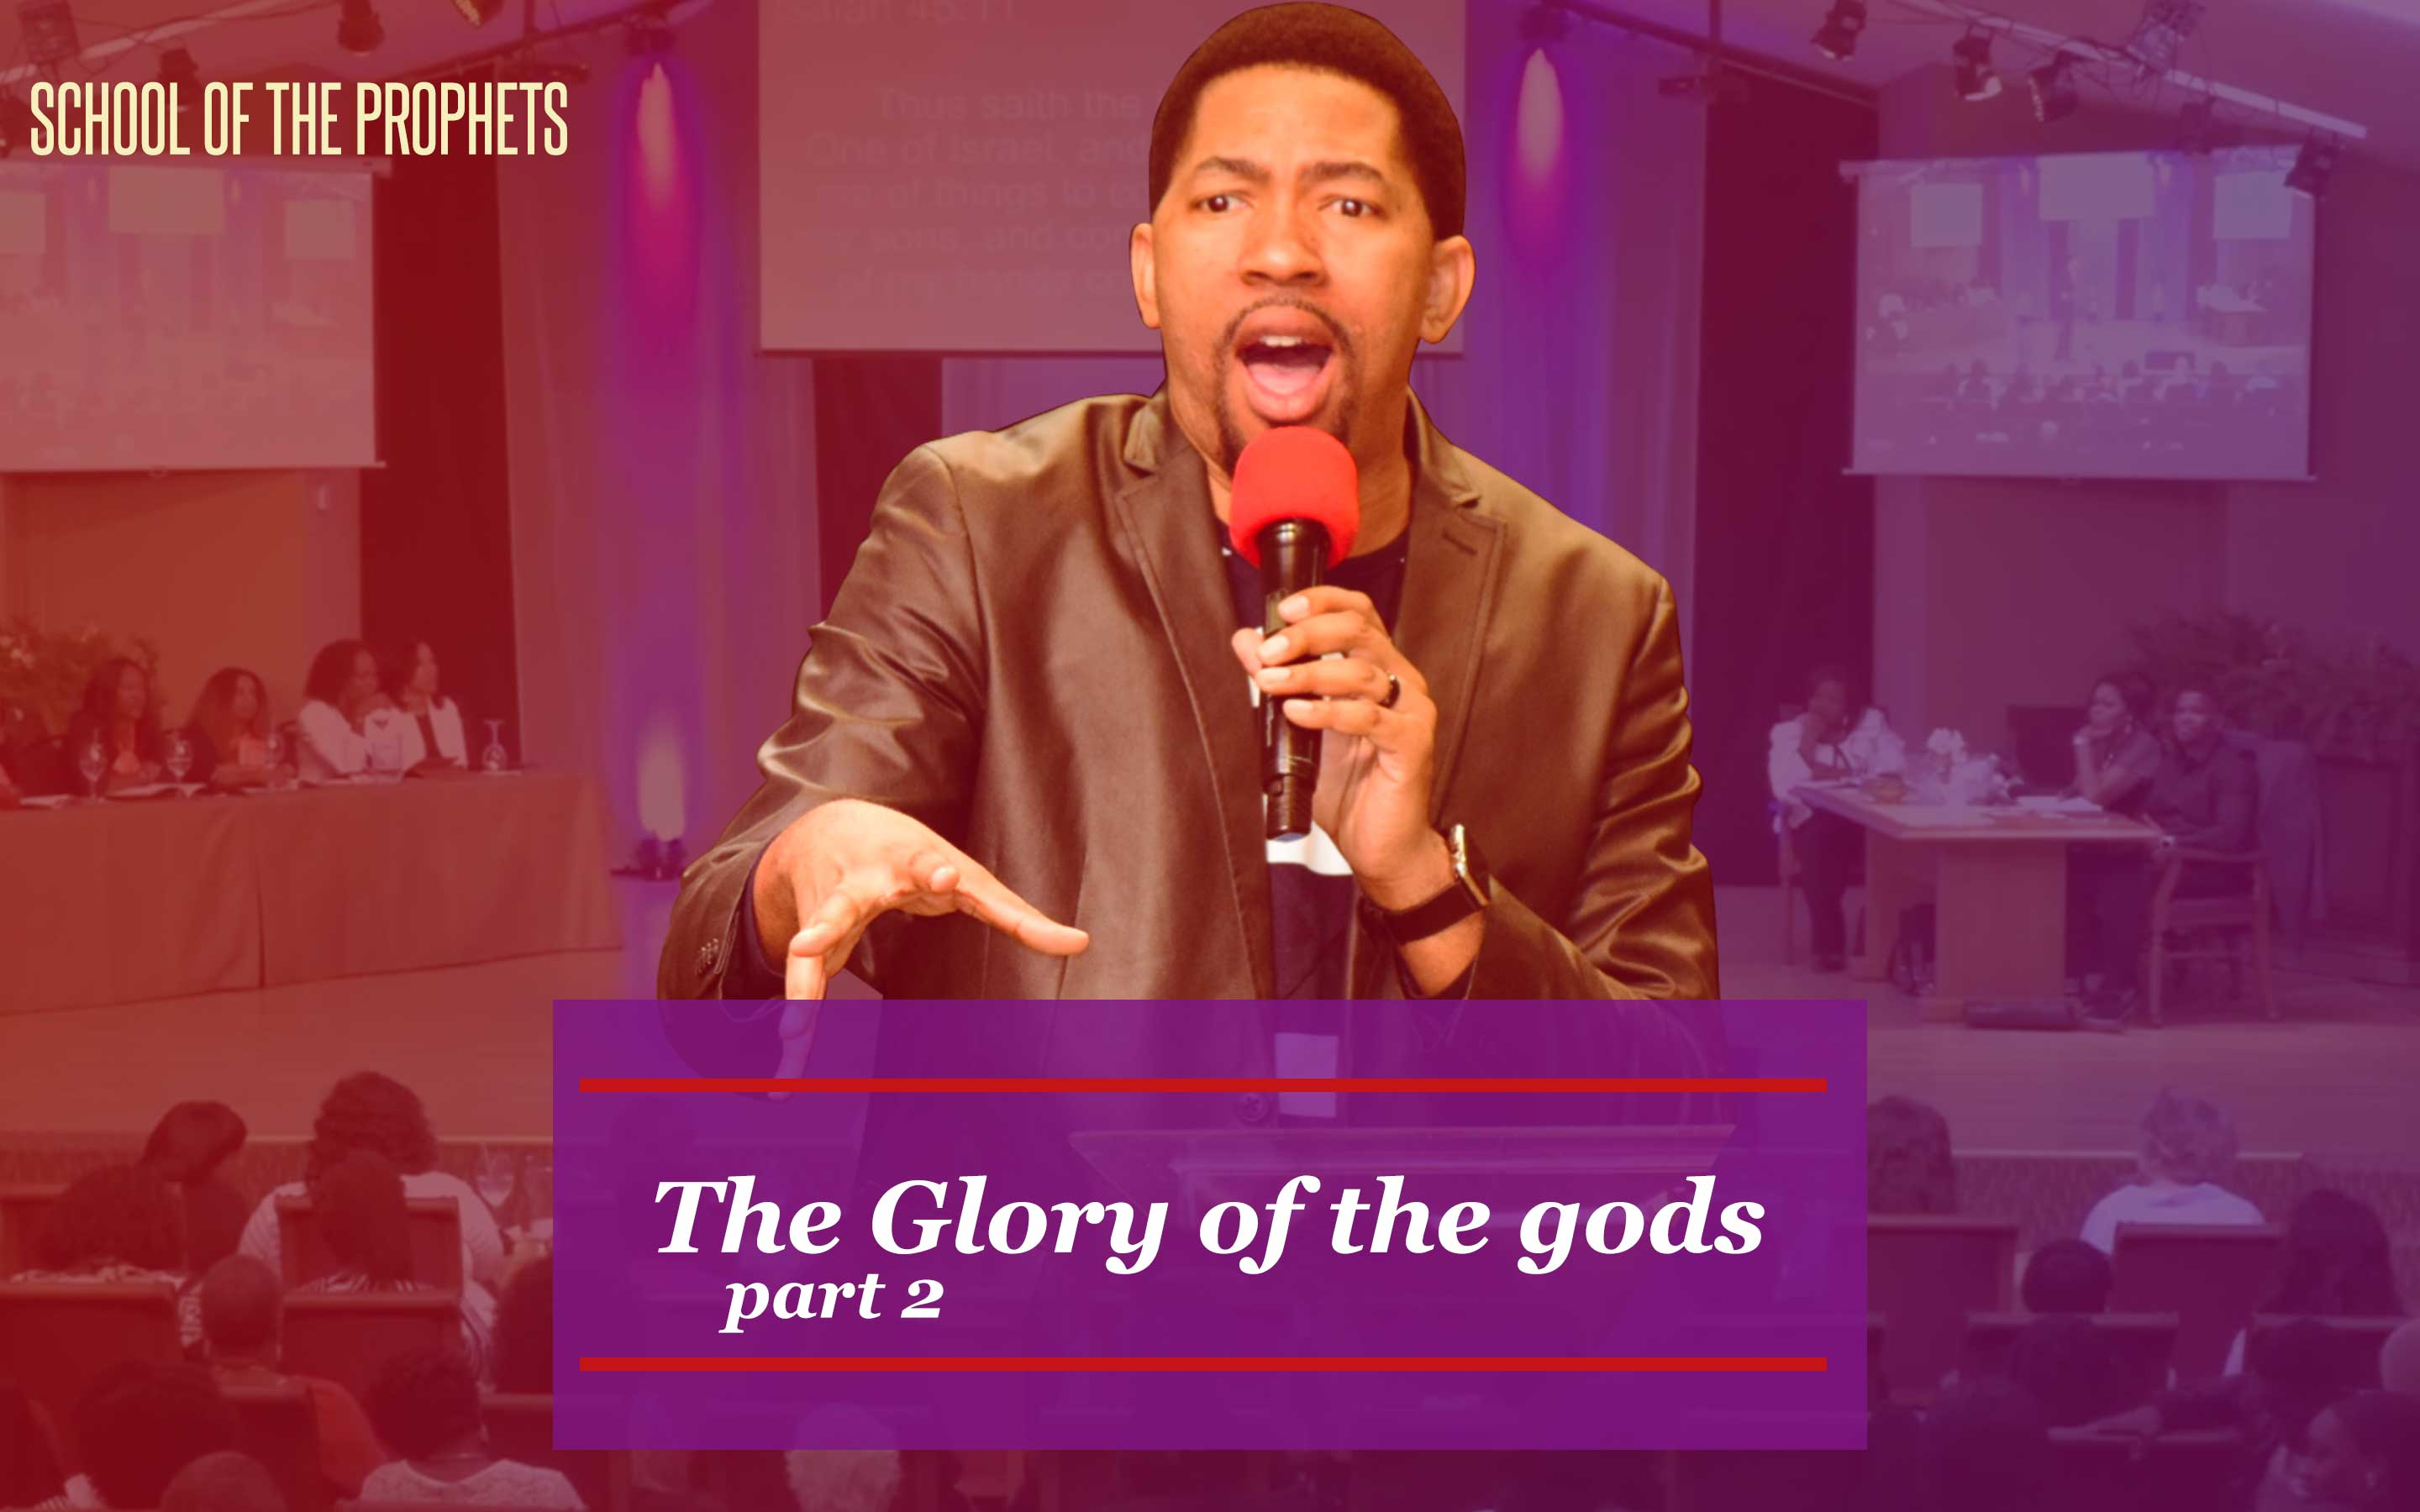 SOP The Glory of the gods 2